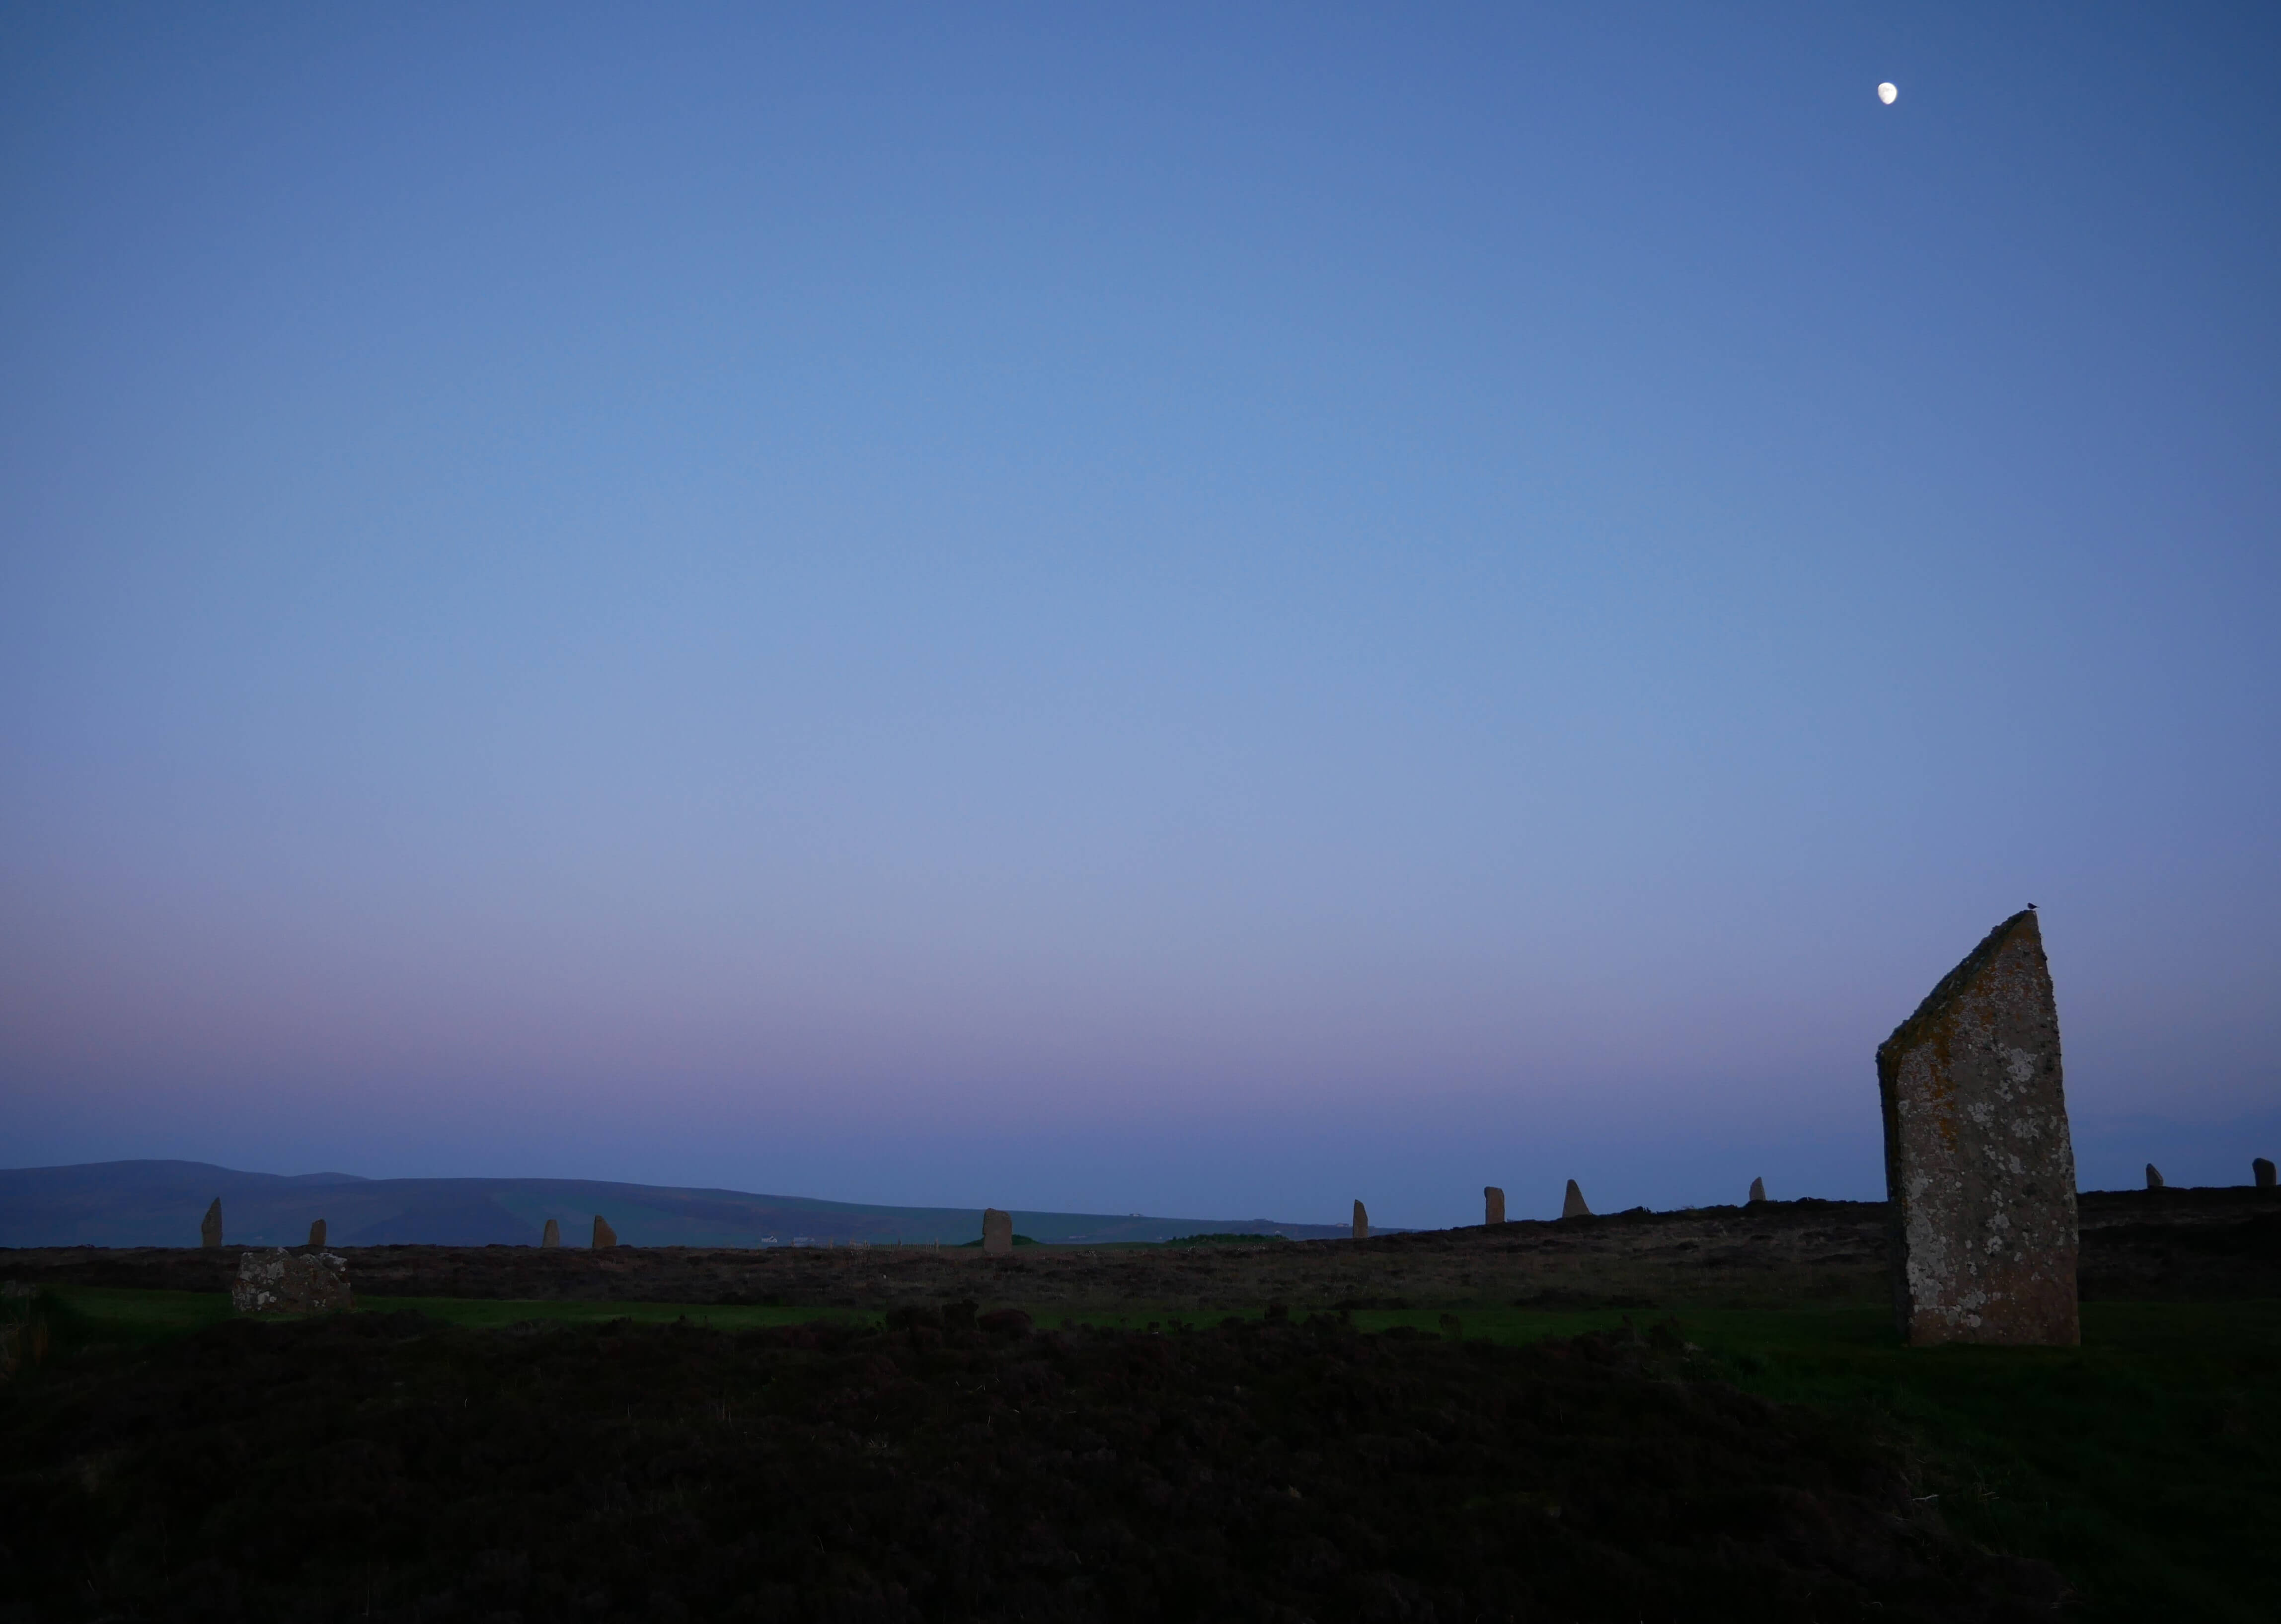 Ring of Brodgar, Stenness, Orkney, Scotland, UK